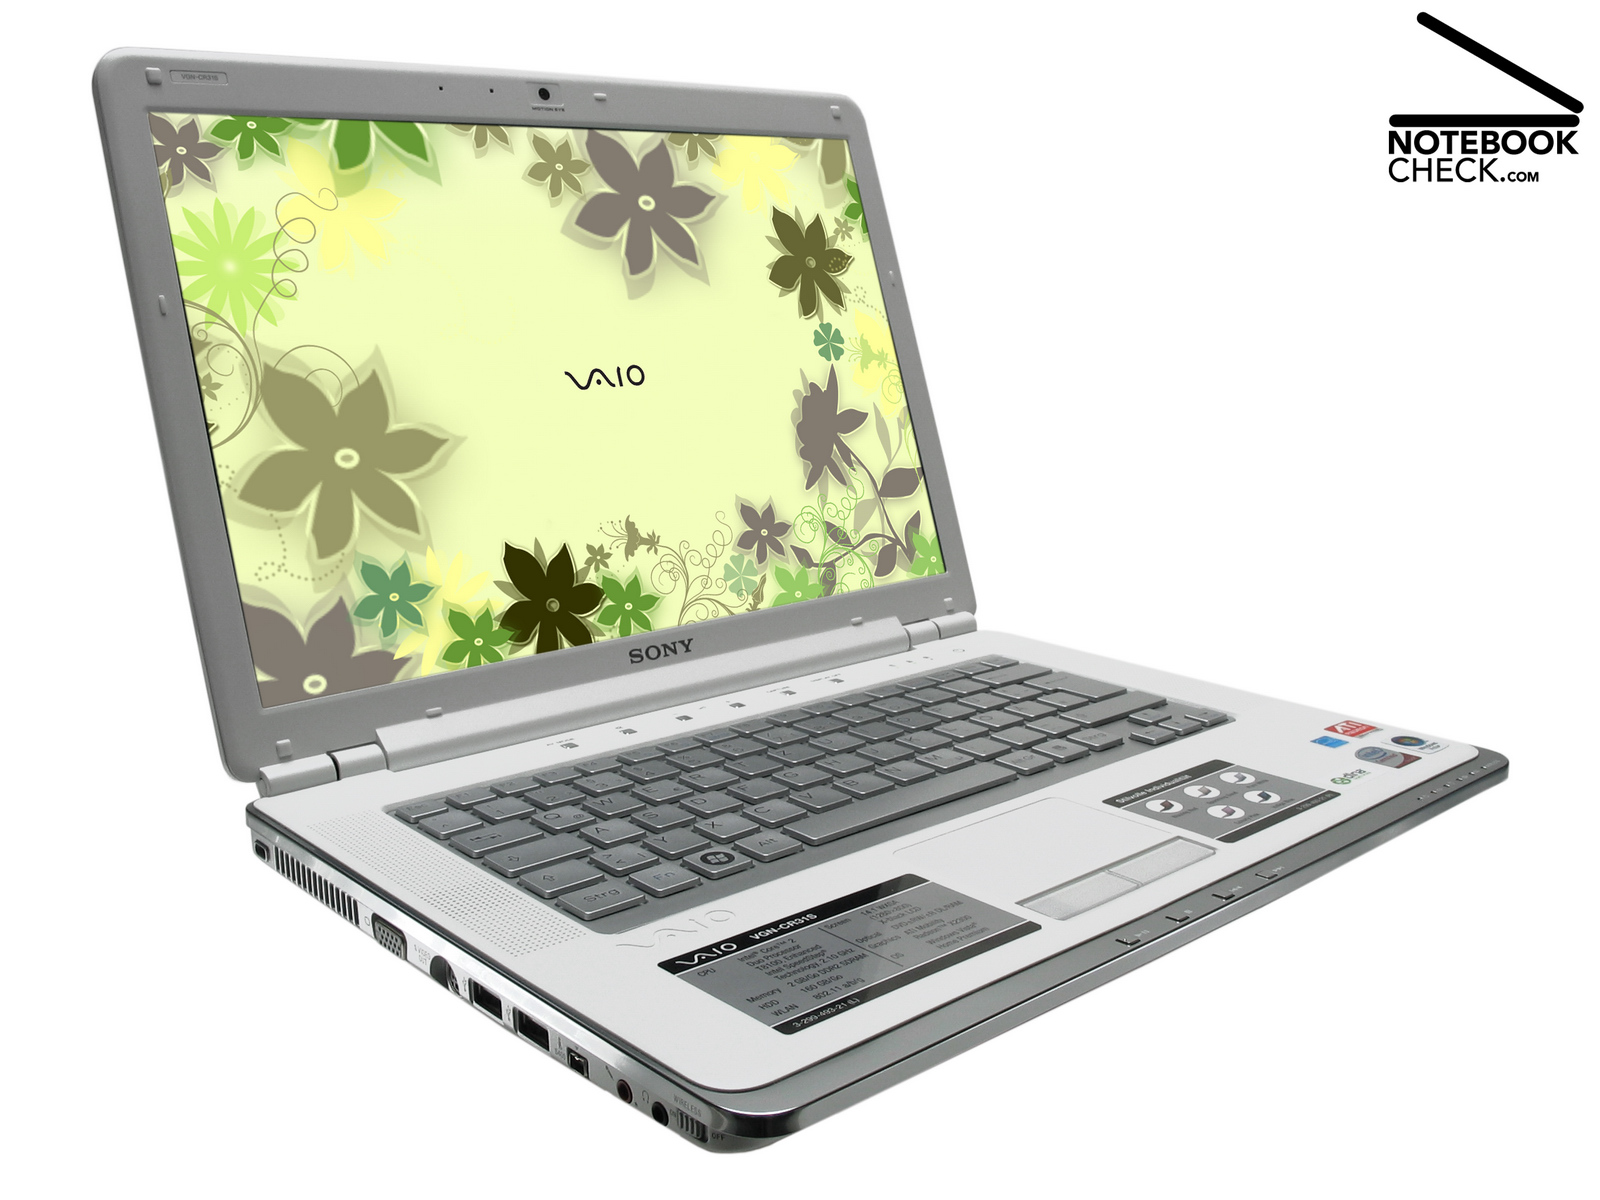 DOWNLOAD DRIVER: SONY VAIO VGN-CR31S